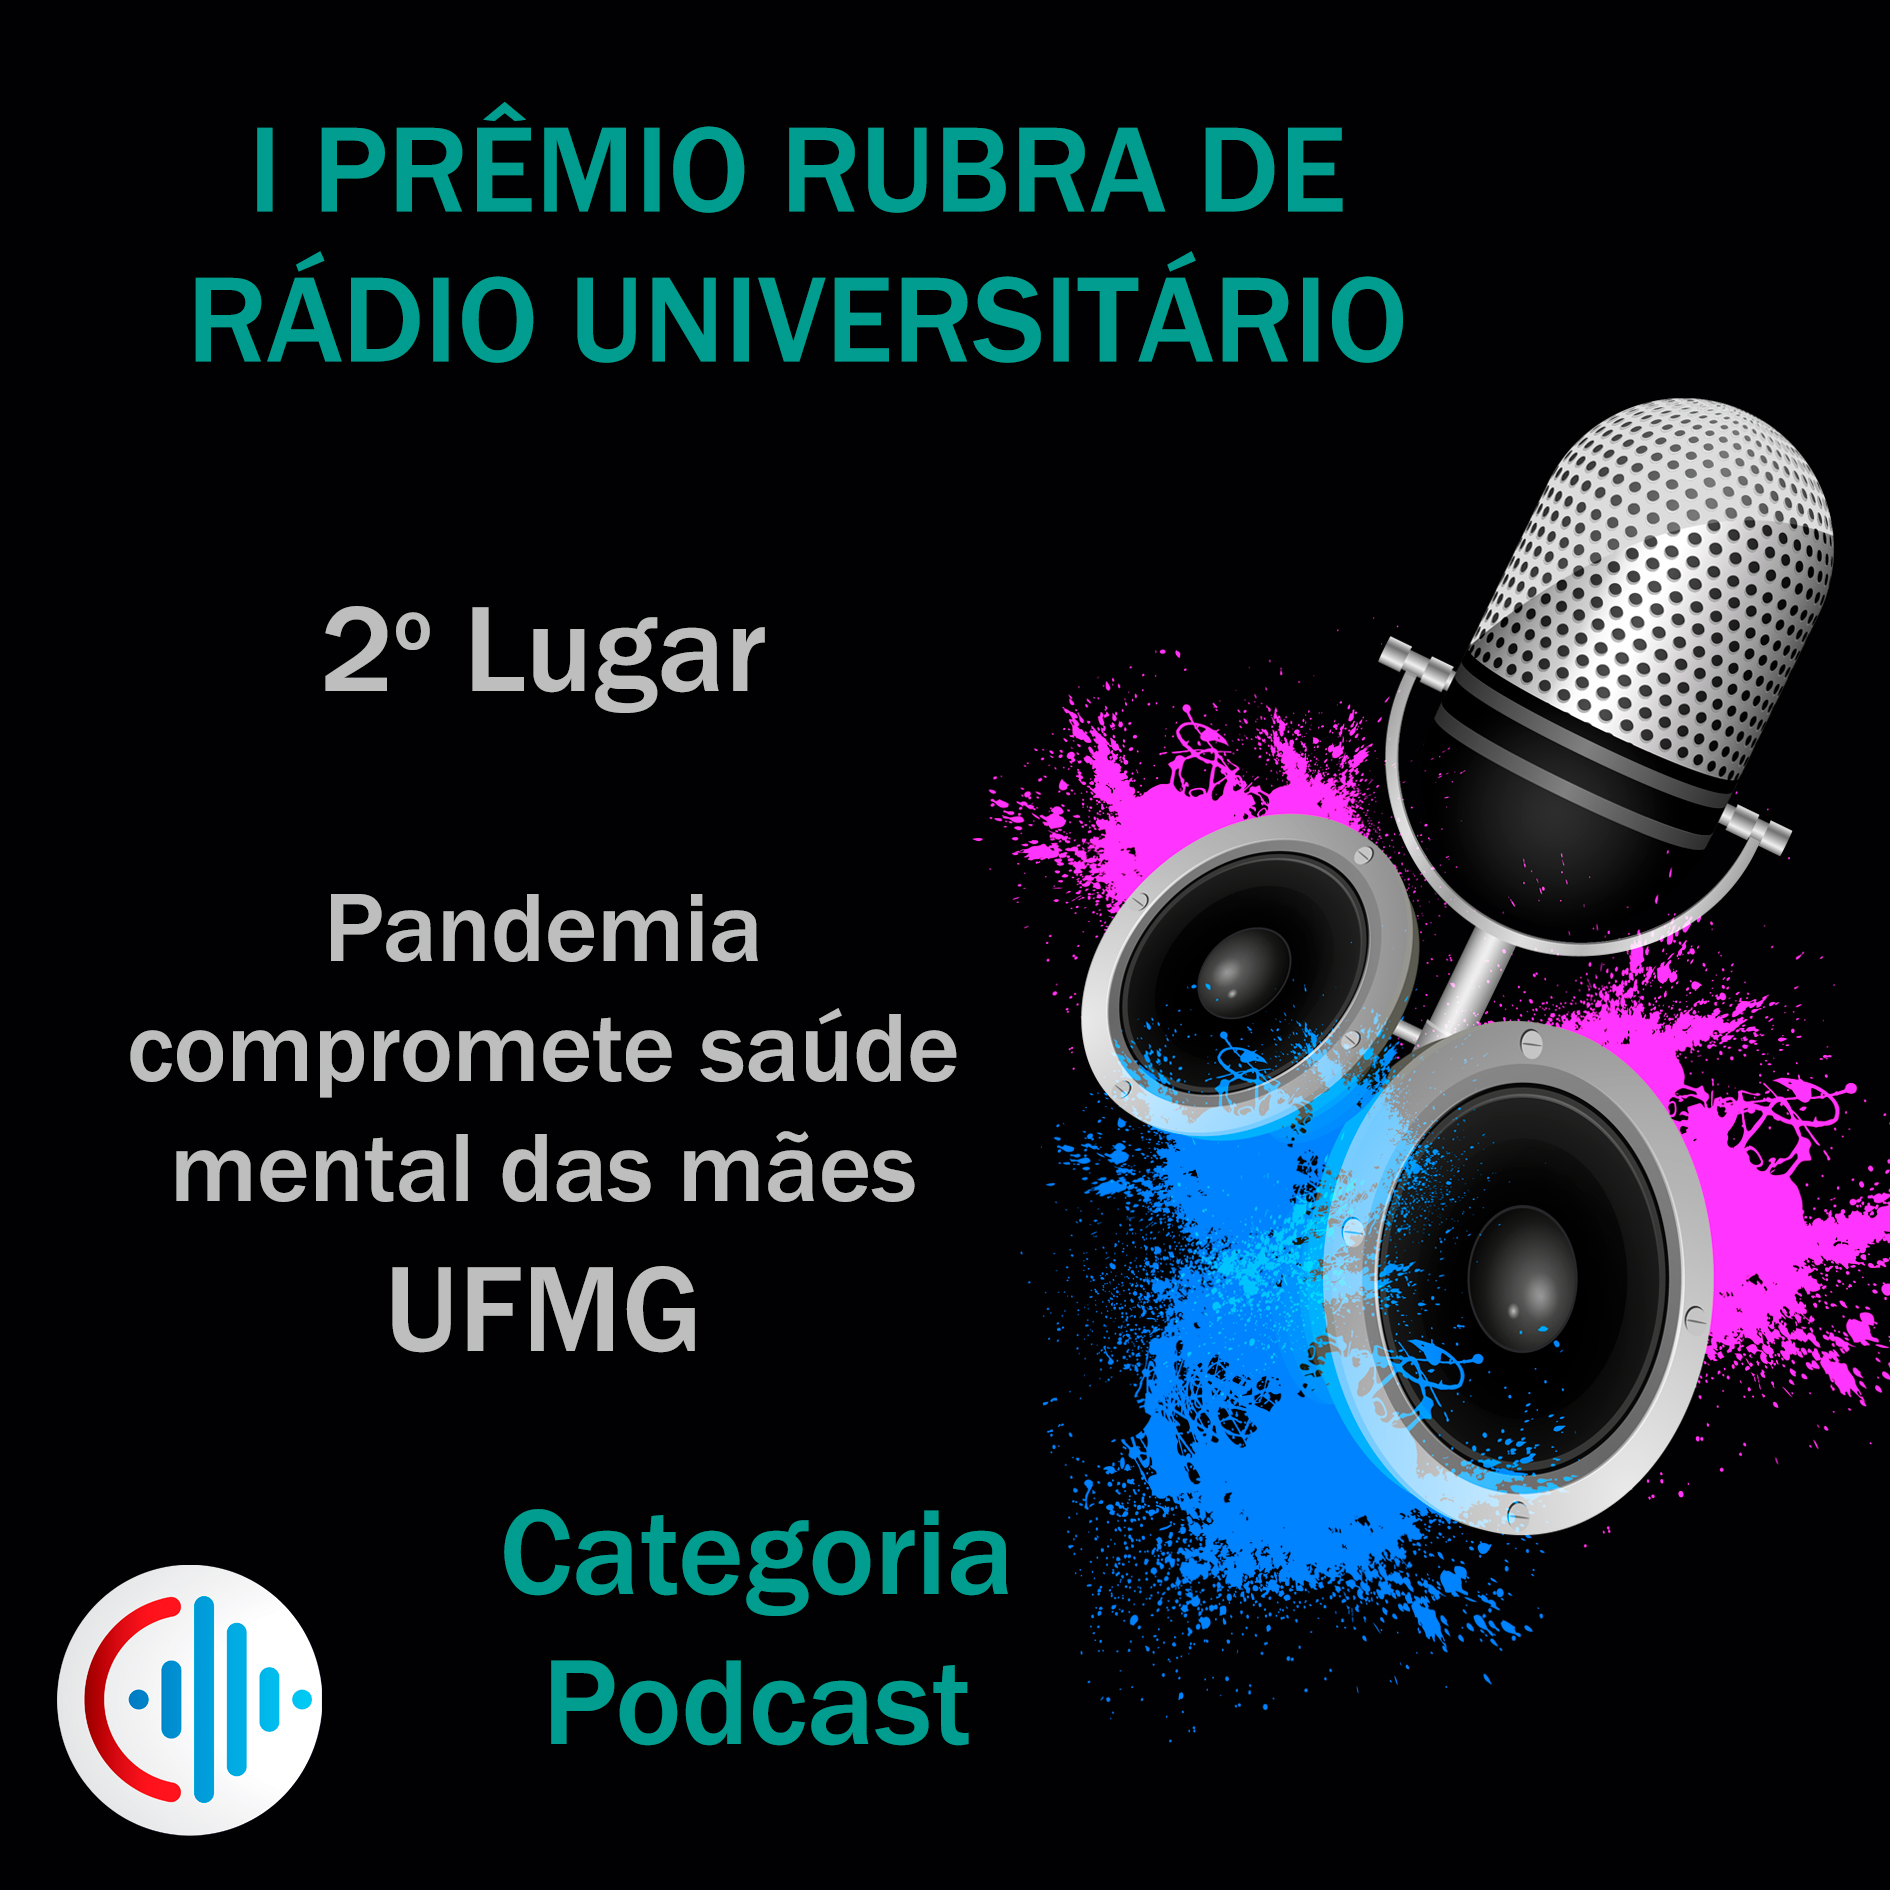 card_2Lugar_Podcast